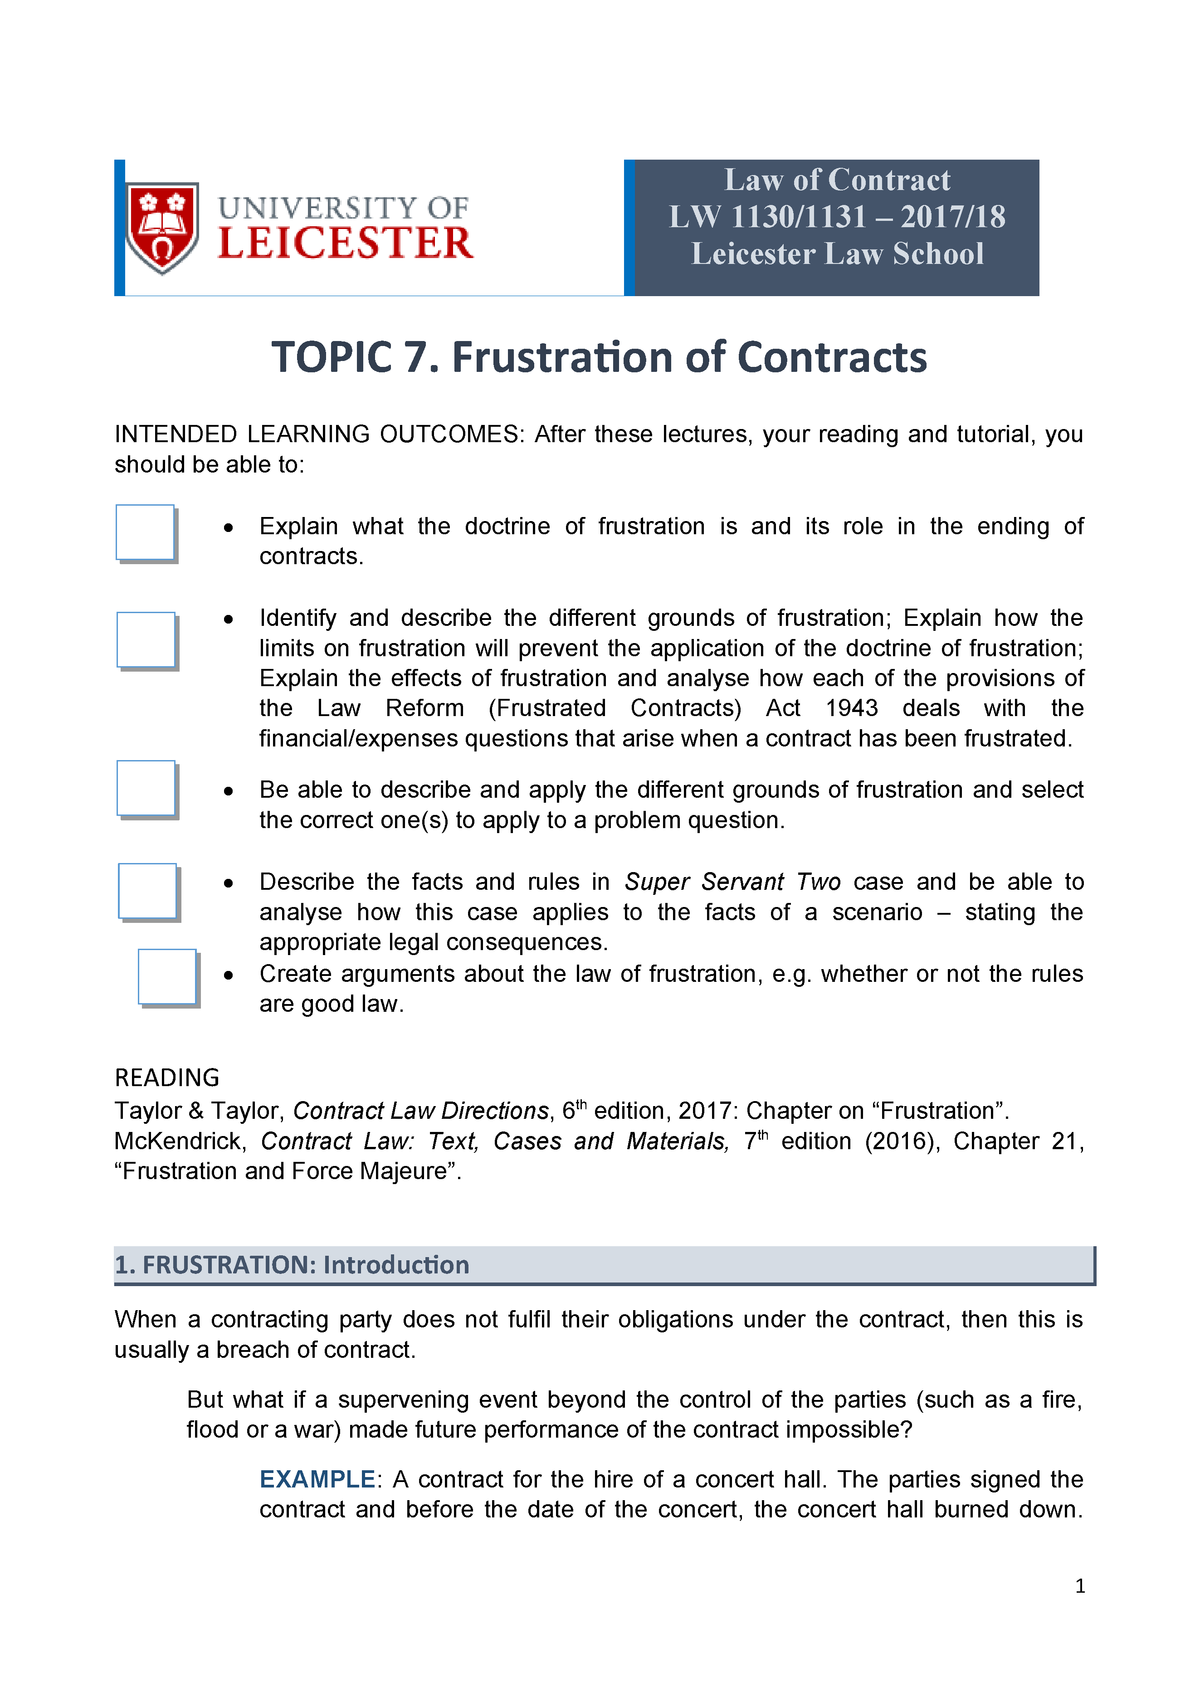 Contract Law 2018 Frustration Handout - LW1130 - Leicester